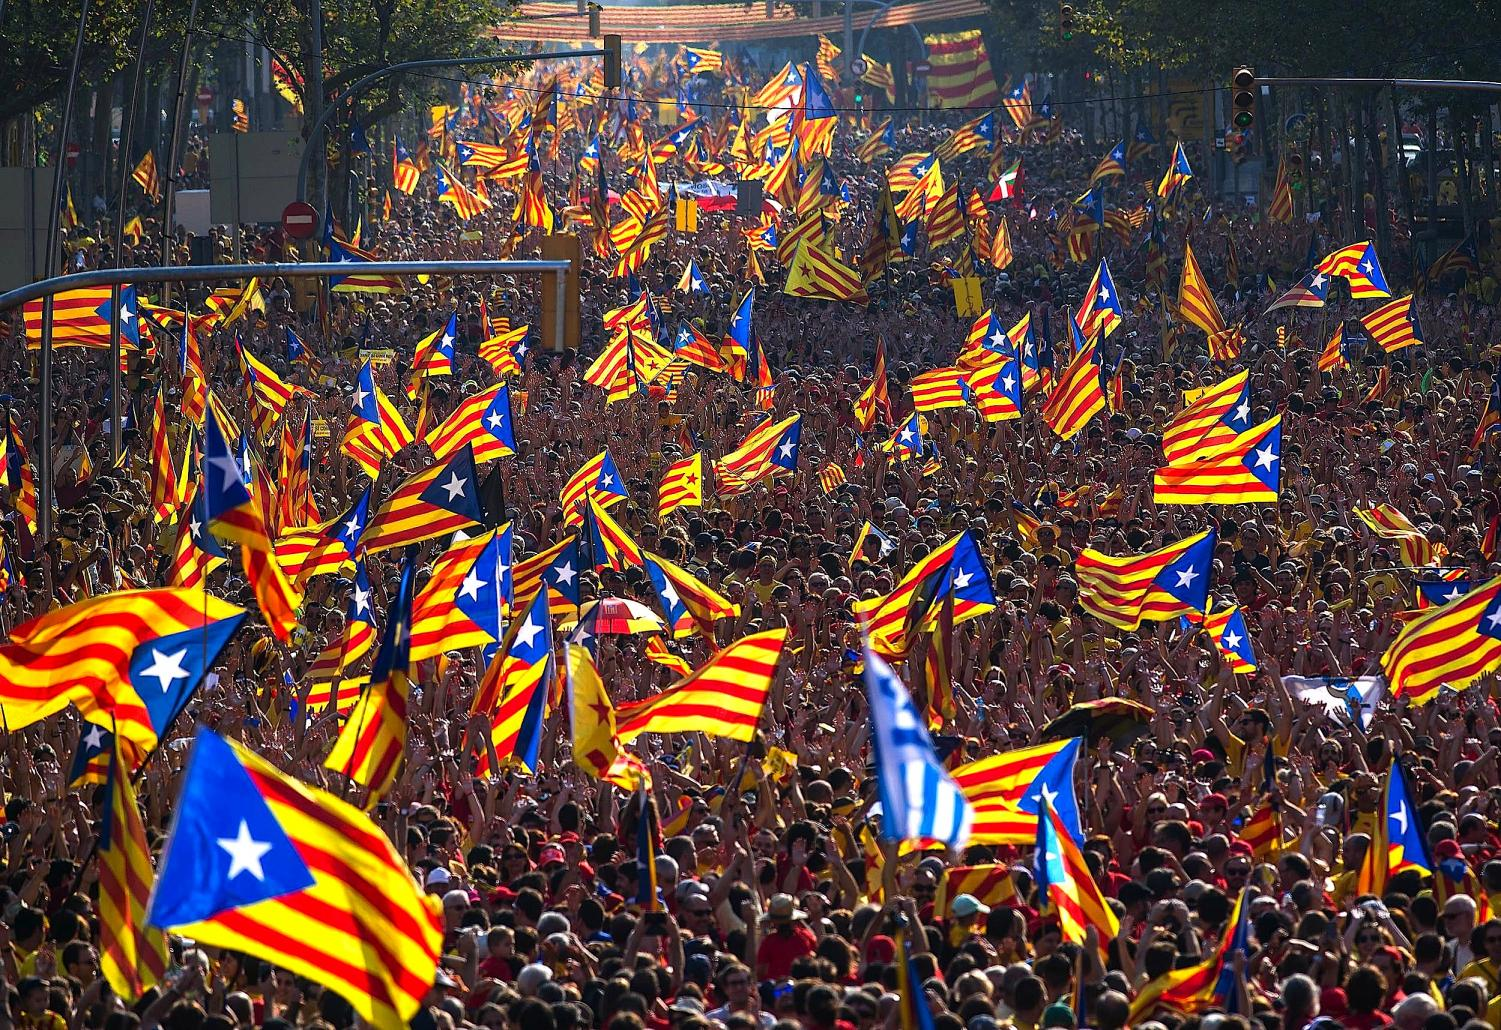 Catalonia continues to fight for the independence and for their people.